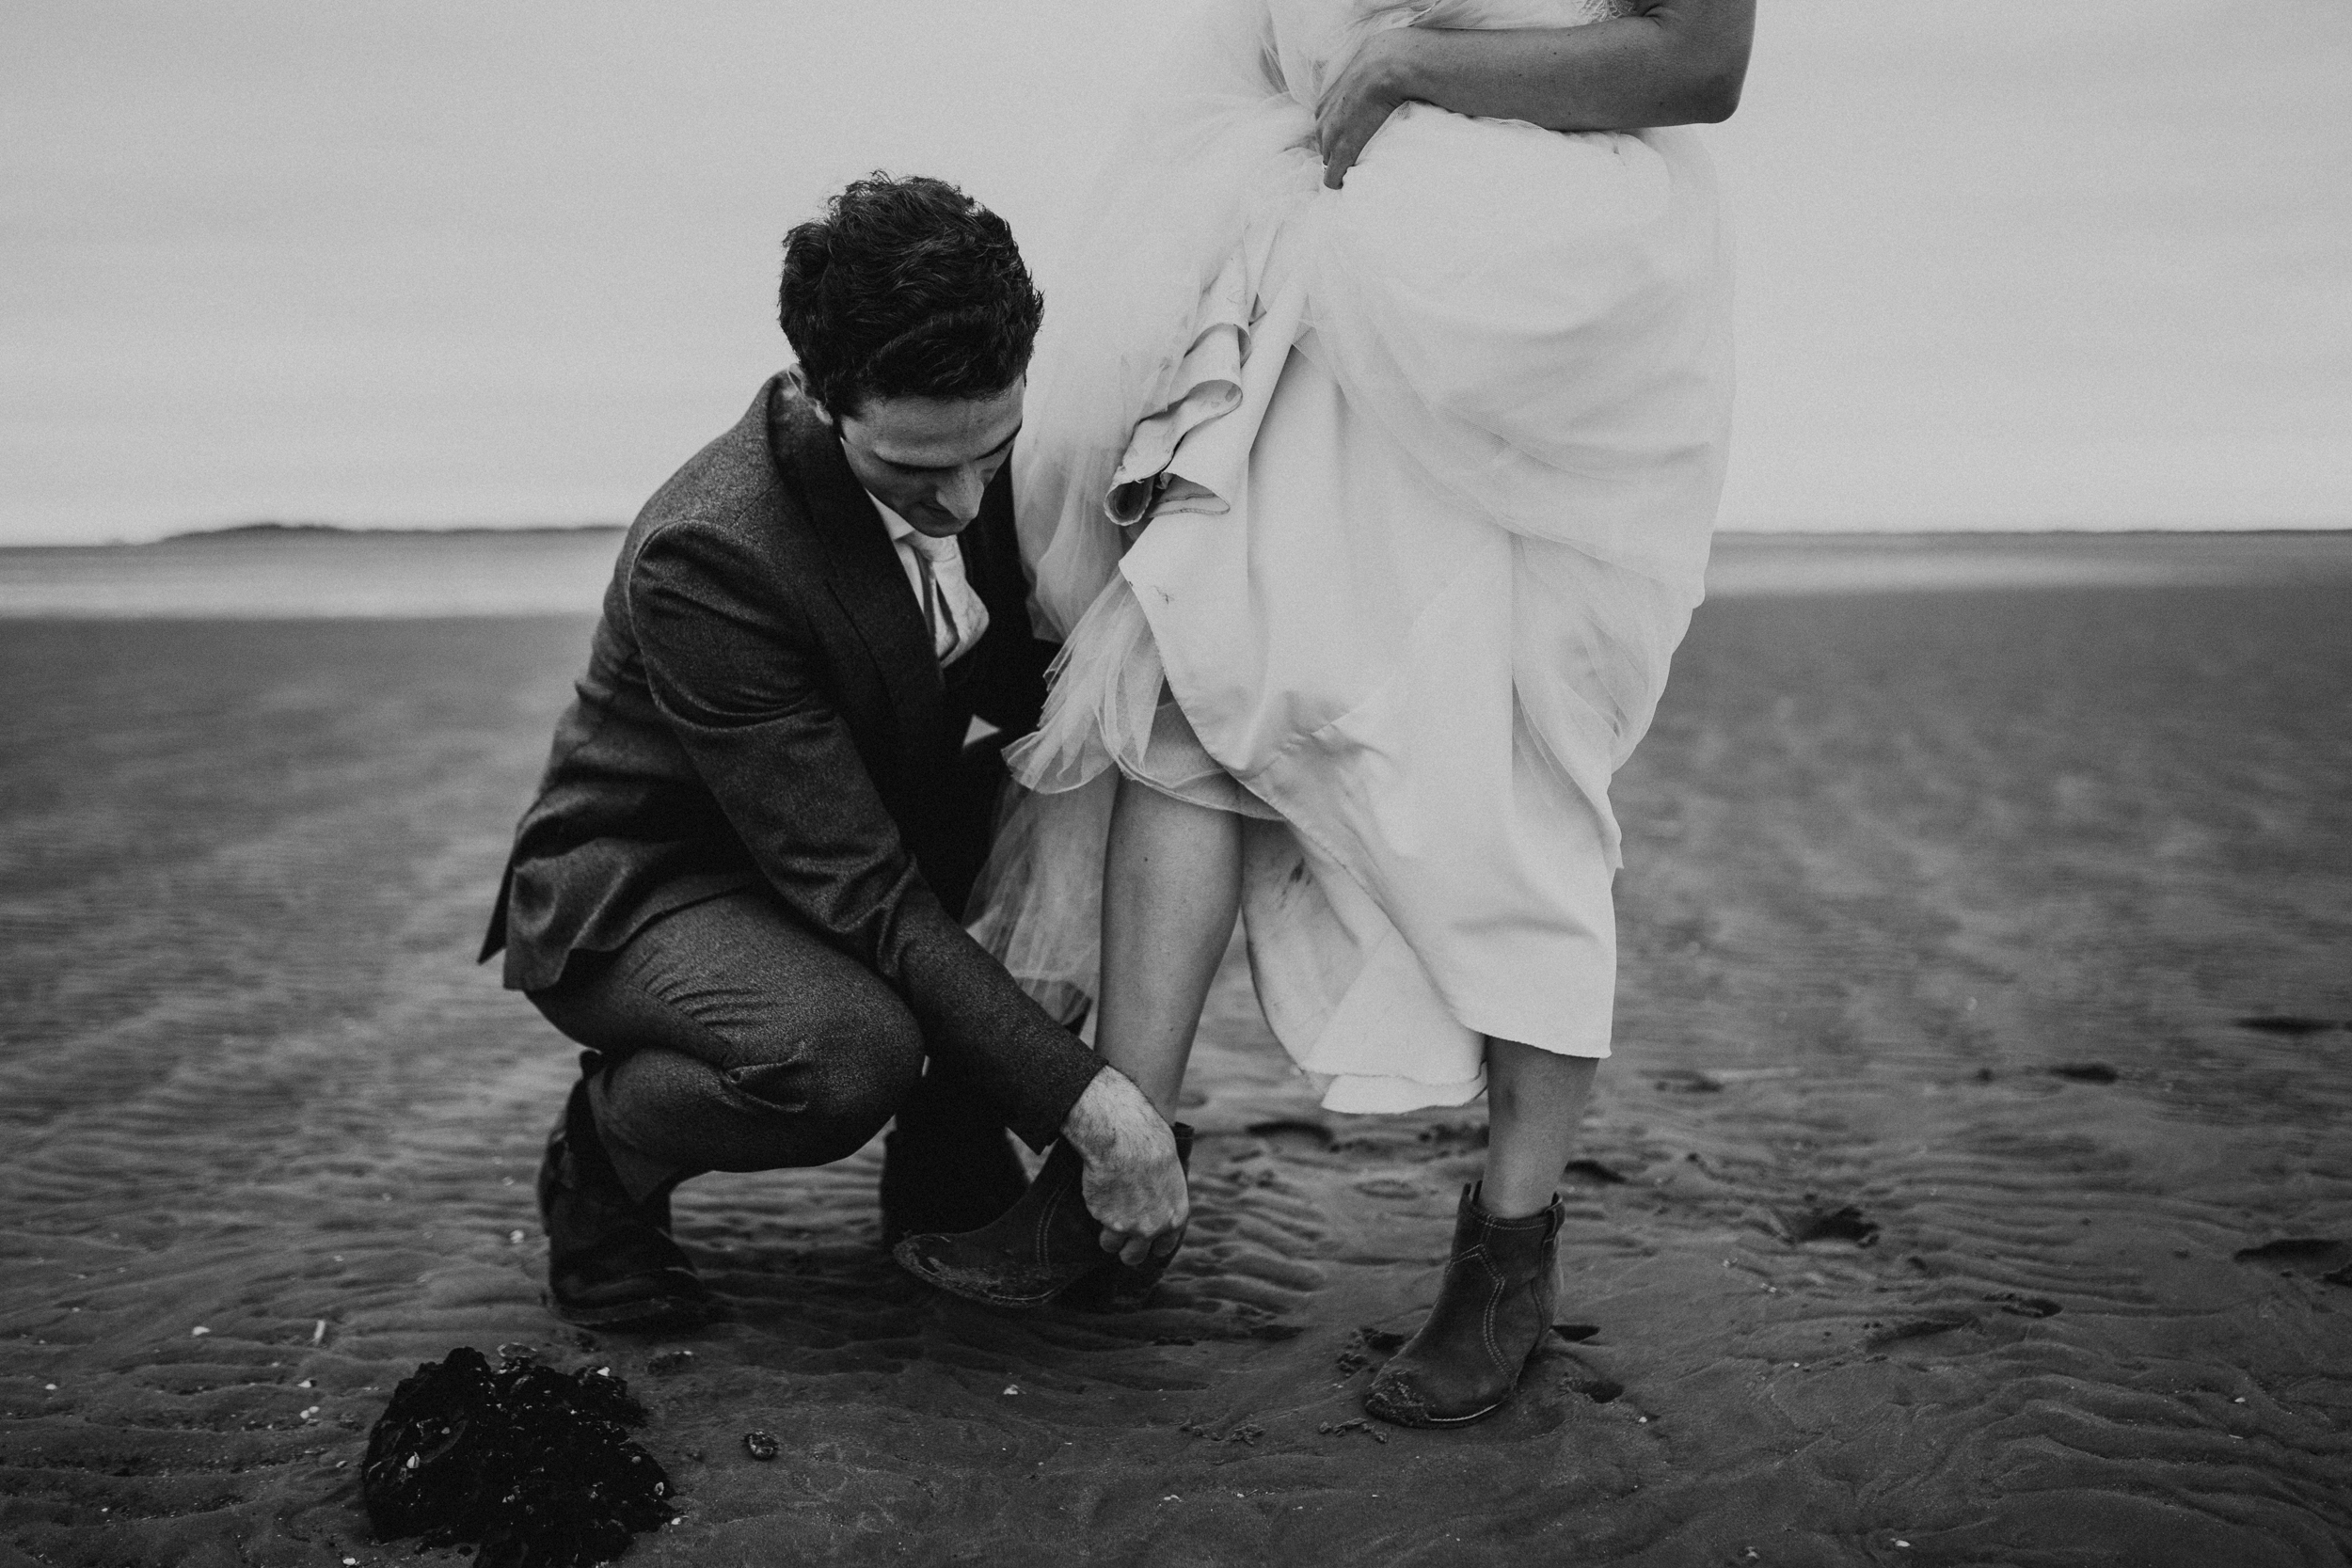 Claire-Clive-Wedding-Norfolk-Beach-Session-Love-Darina-Stoda-Photography-55.jpg